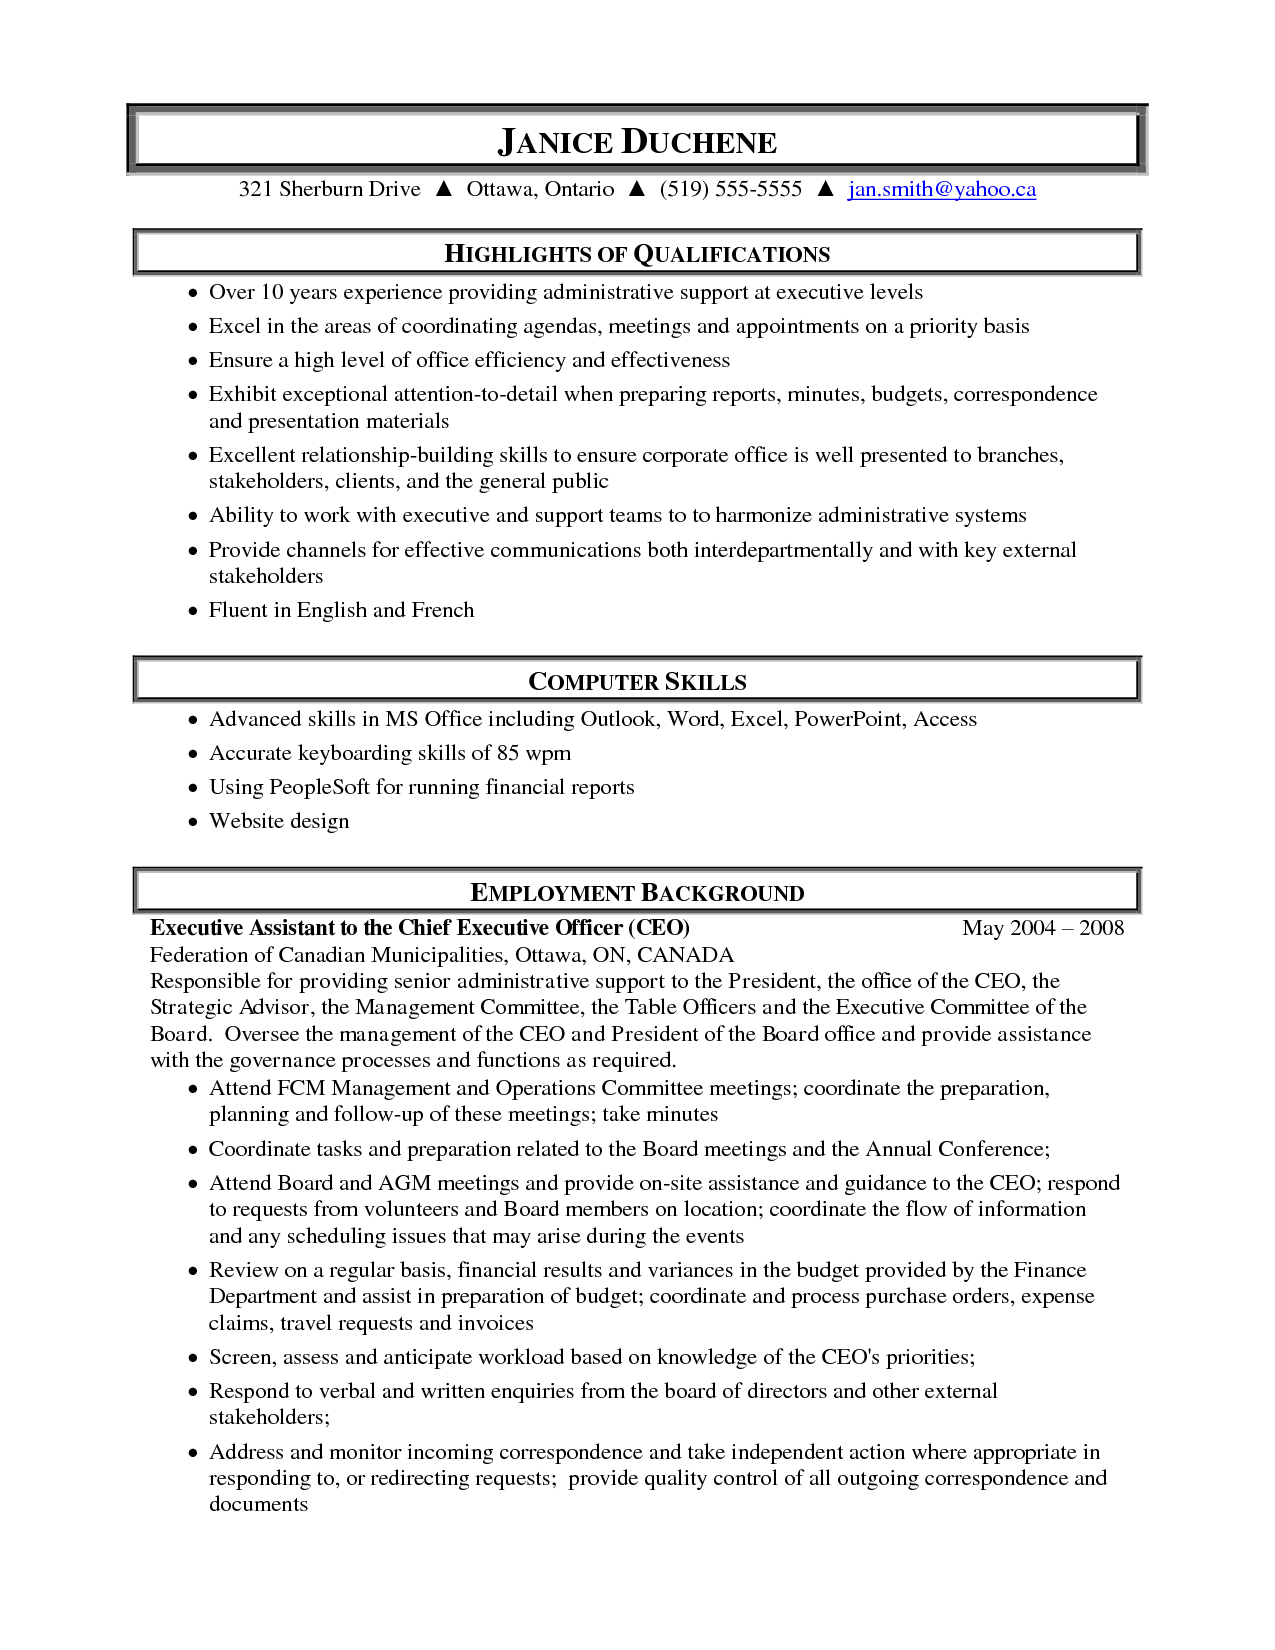 medical administrative assistant resume samples highlight of qualifications - Sample Administrative Assistant Resume